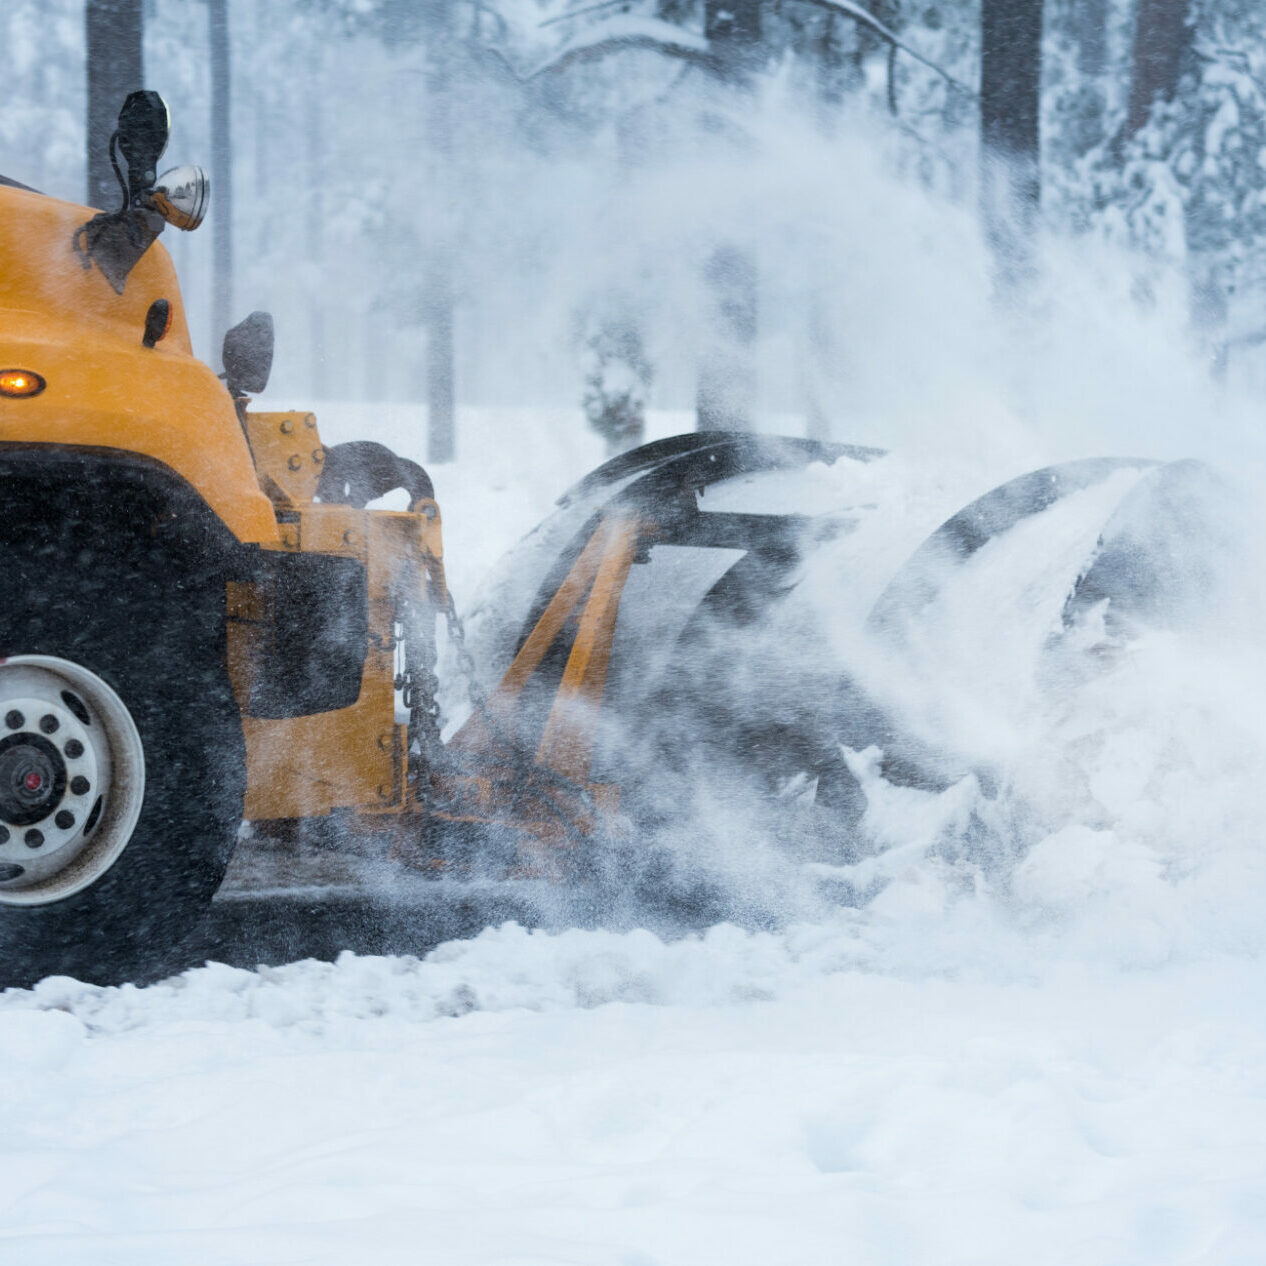 snow-plow-at-work_t20_rRpAPd